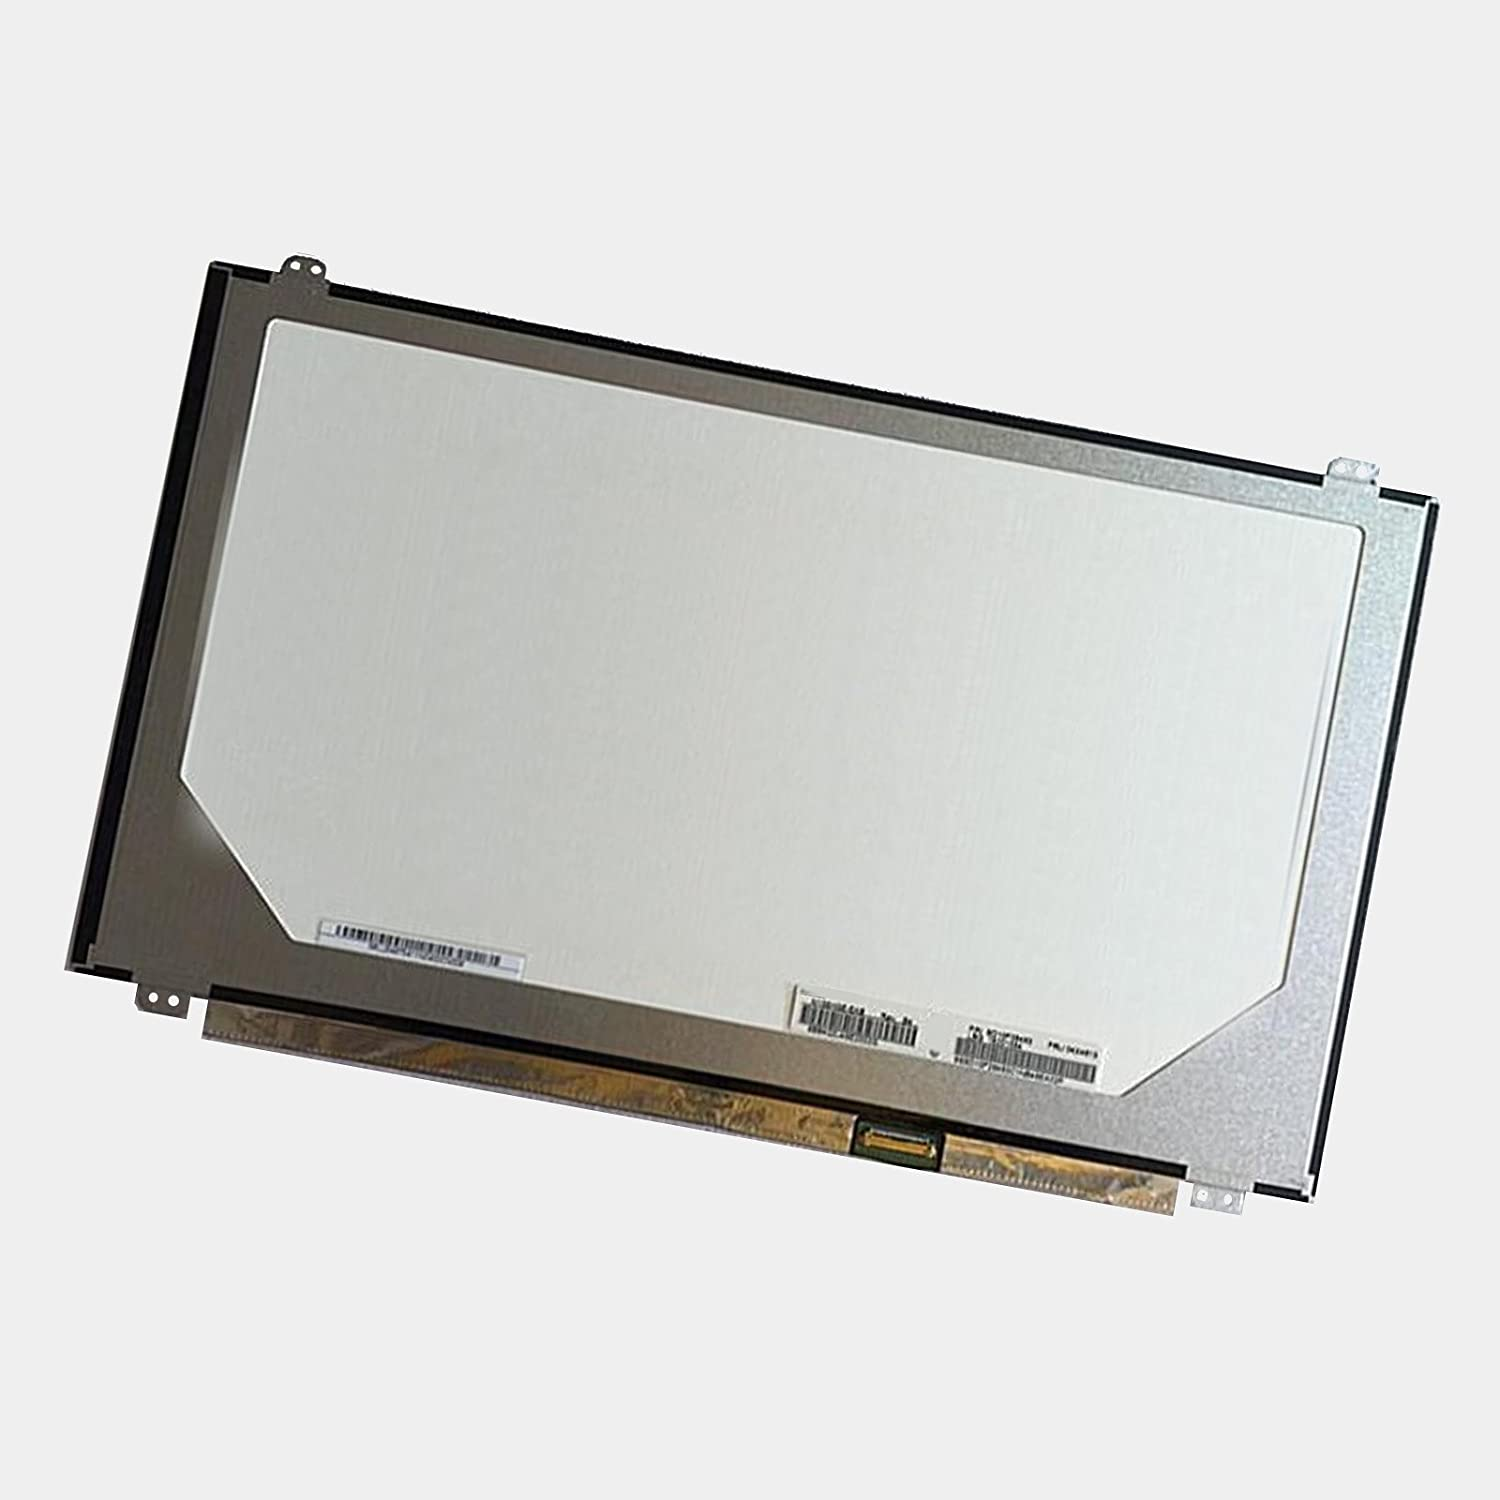 FHD 1920x1080 Glossy SCREENARAMA New Screen Replacement for Acer Aspire E5-575 LCD LED Display with Tools IPS